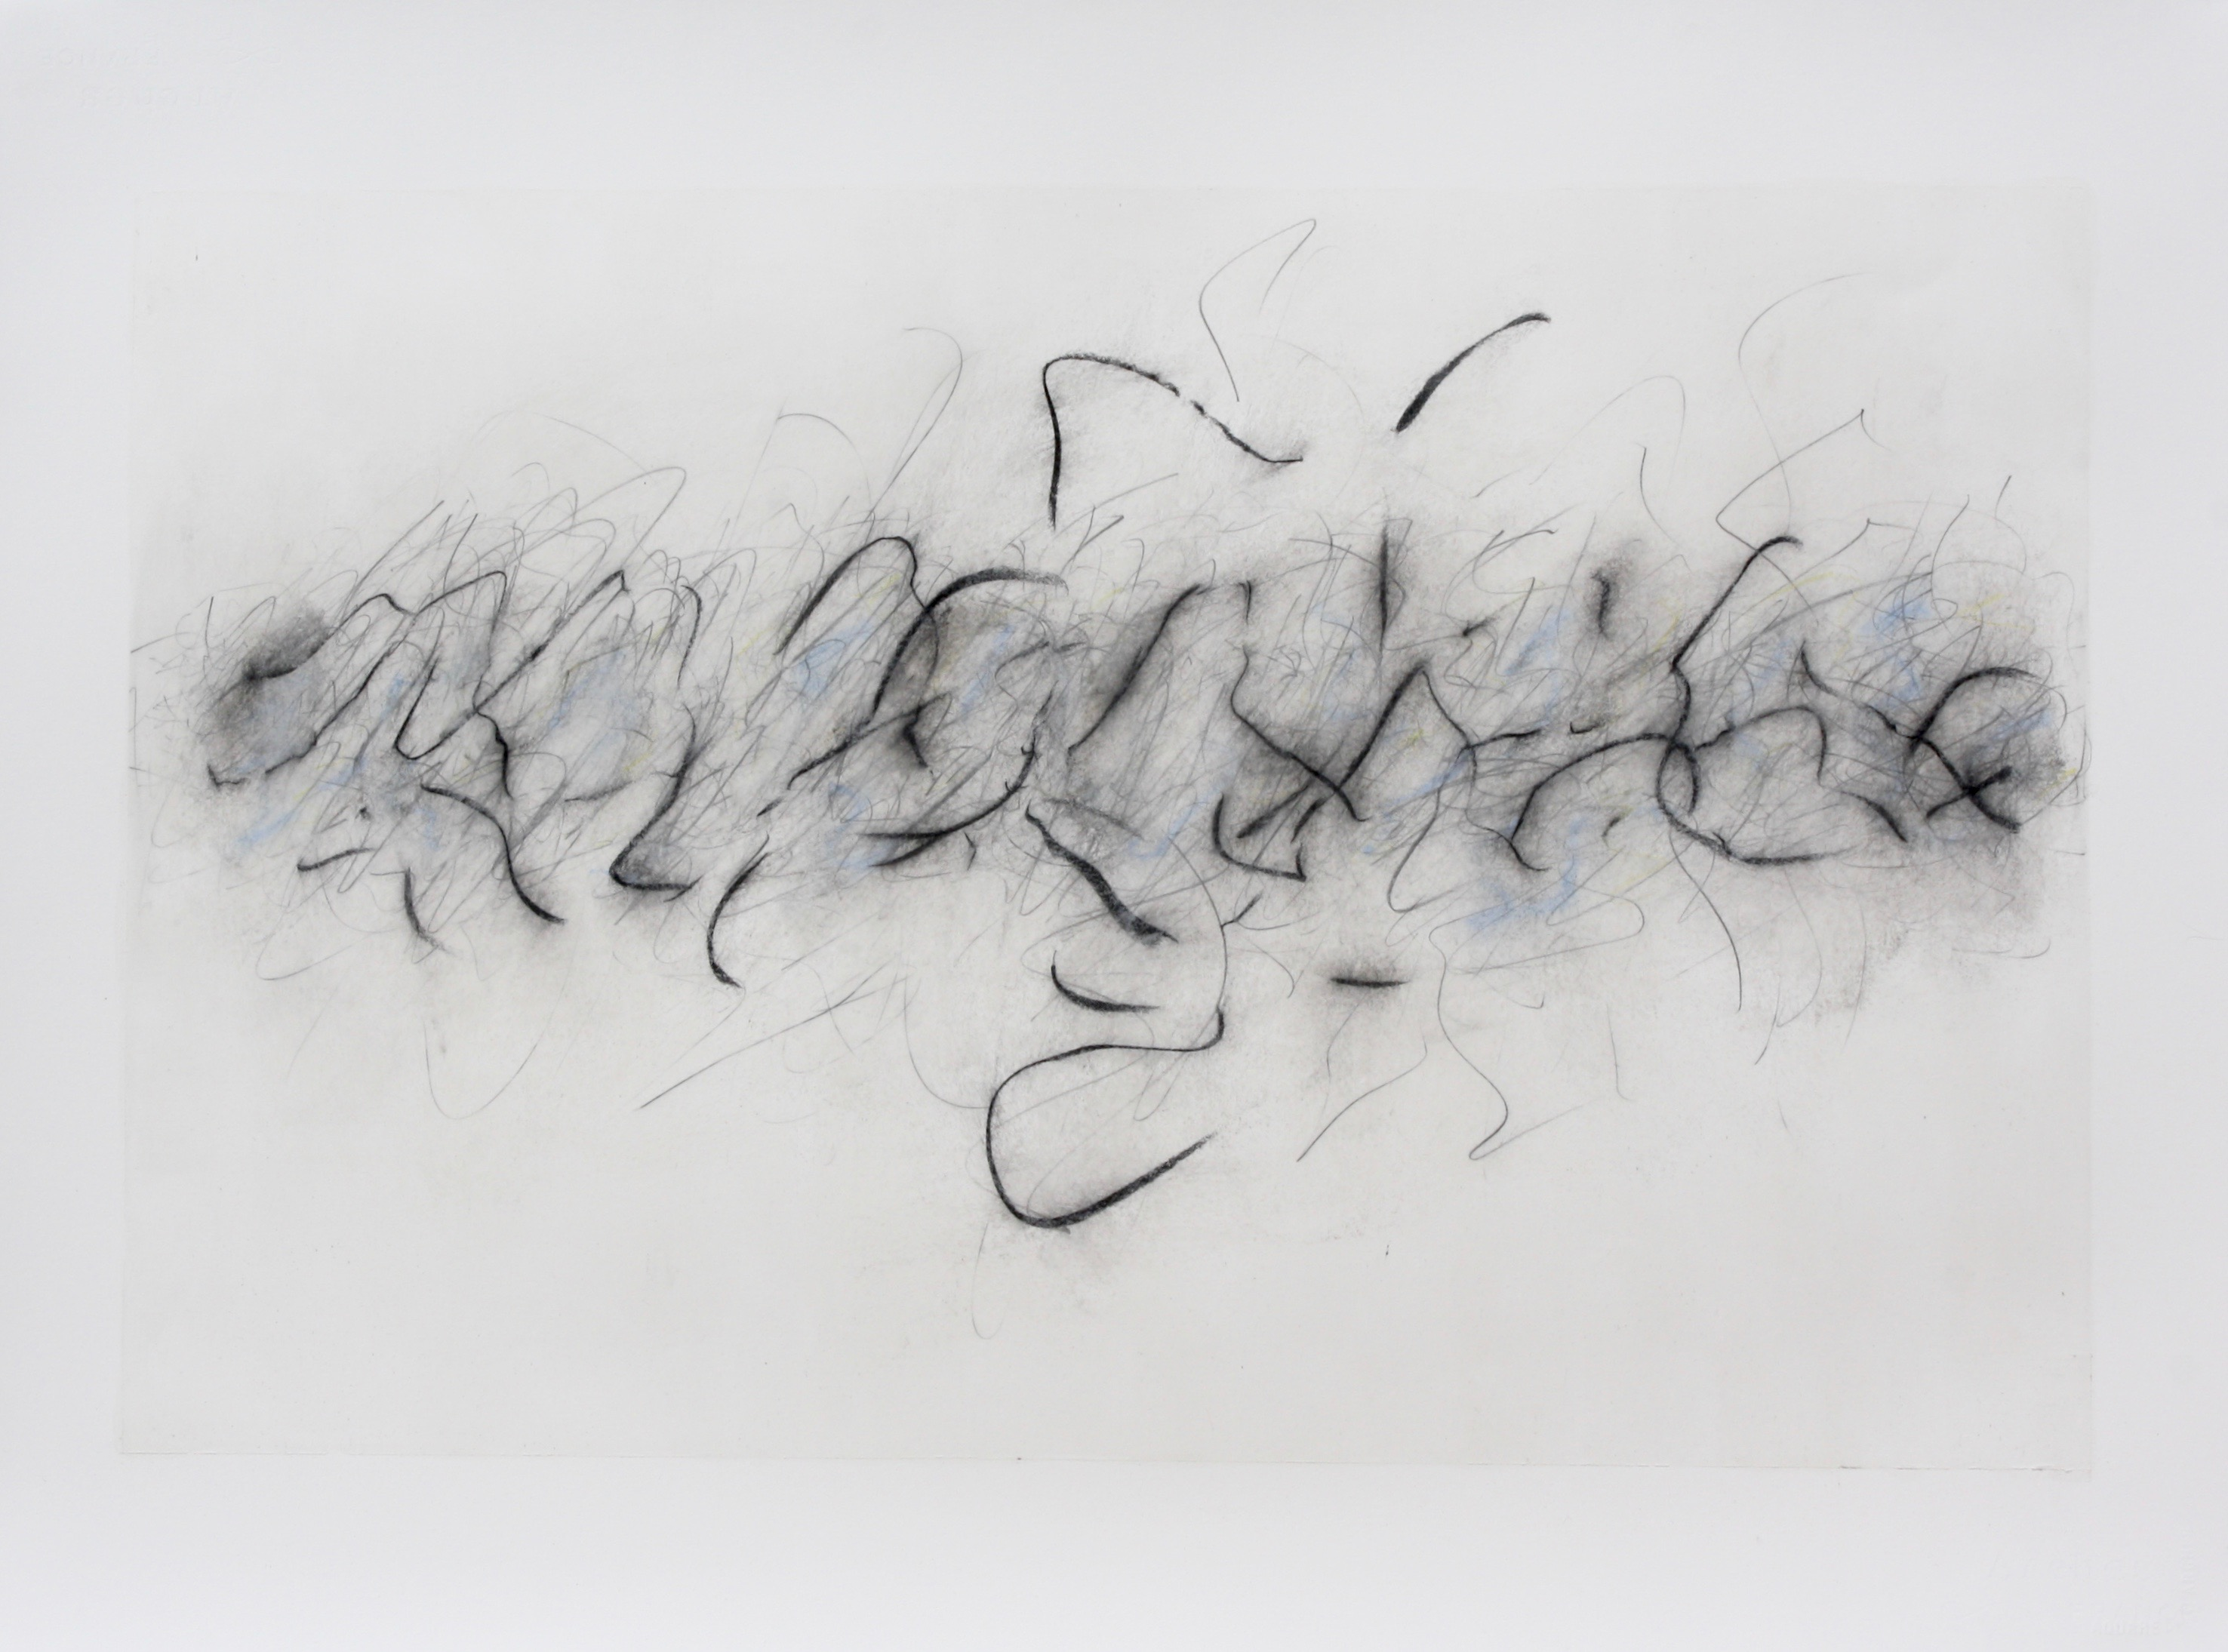 Robinson_Fiona Debussy String Quartet 4th Movement. Graphite charcoal and mixed media 76 x 56cms